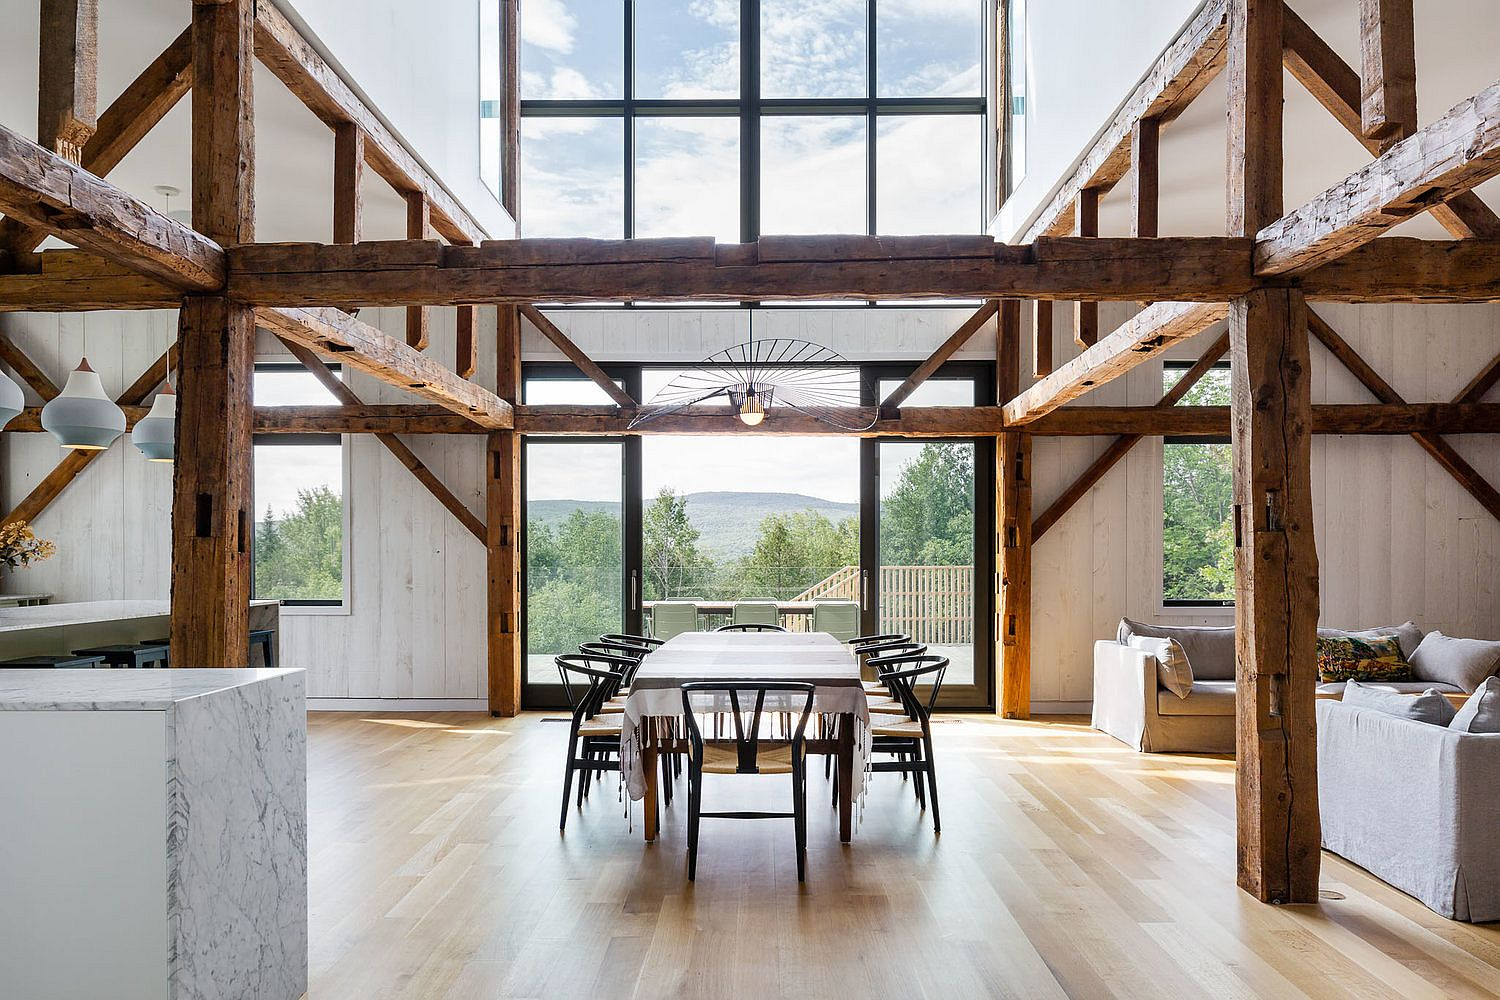 Original structure of the barn has been preserved and enhanced to create a fabulous home